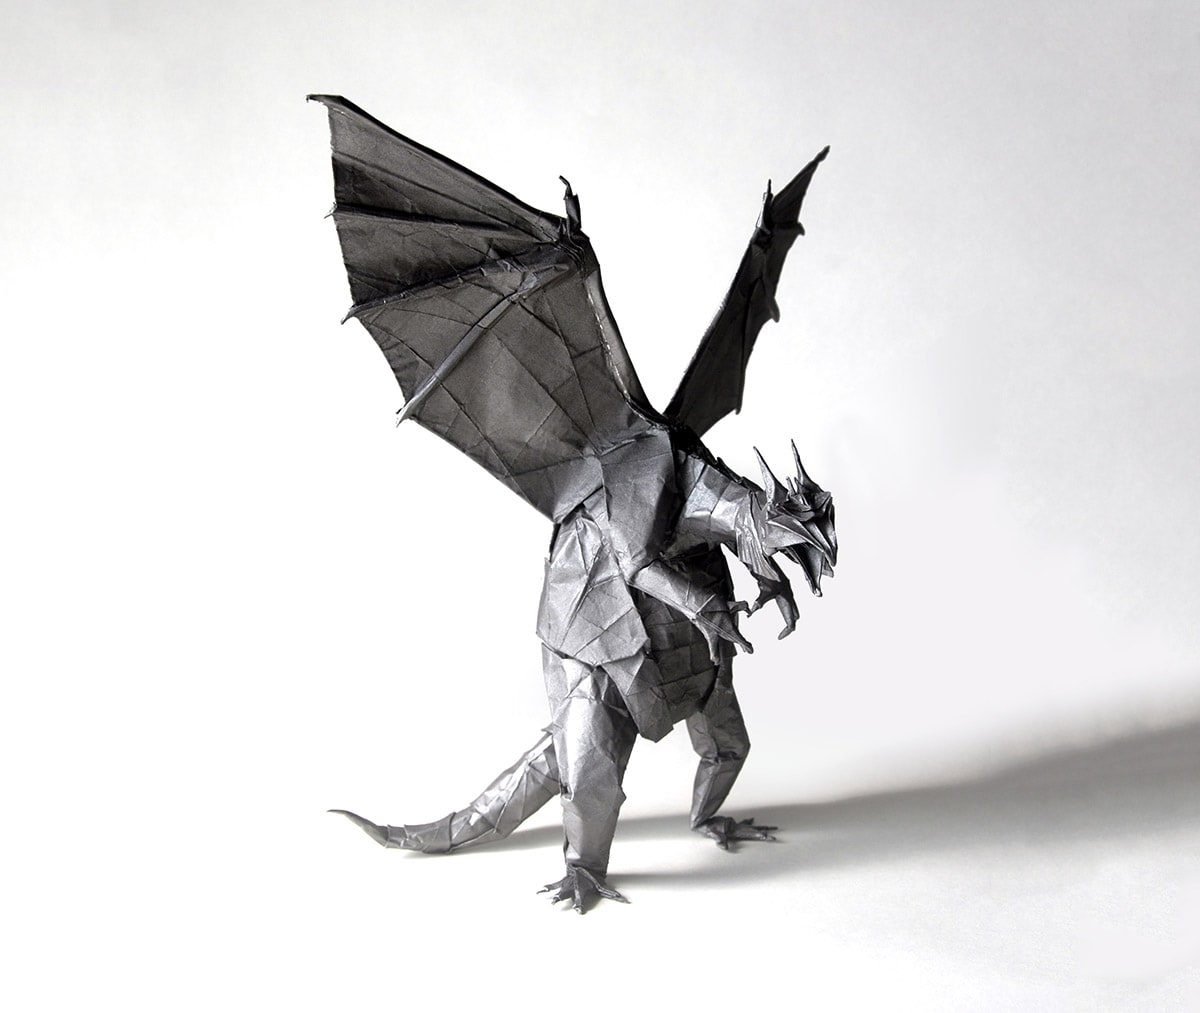 HT_7619] Origami Dragon Instructions Advanced Origami Dragon ... | 1013x1200